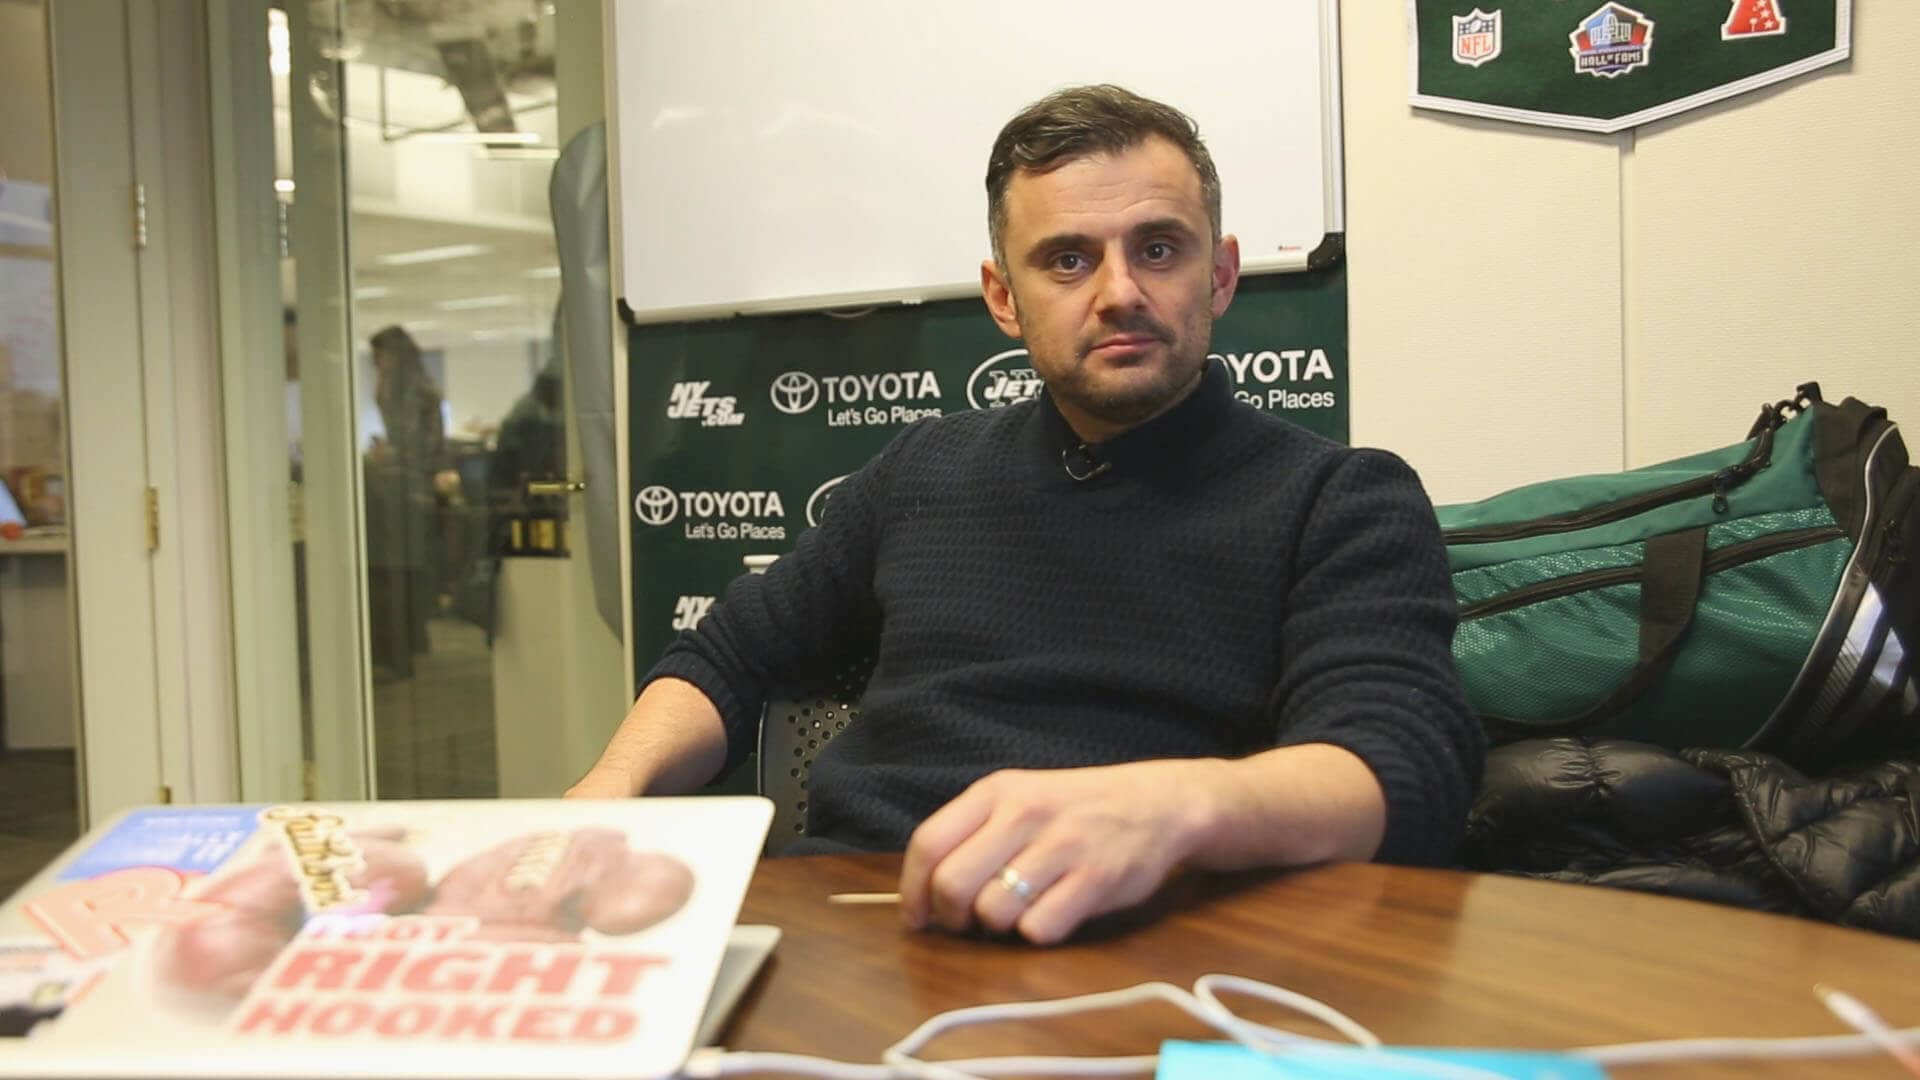 Gary Vaynerchuk talks about franchise businesses, Snapchat, IFTTT and Daymond John.